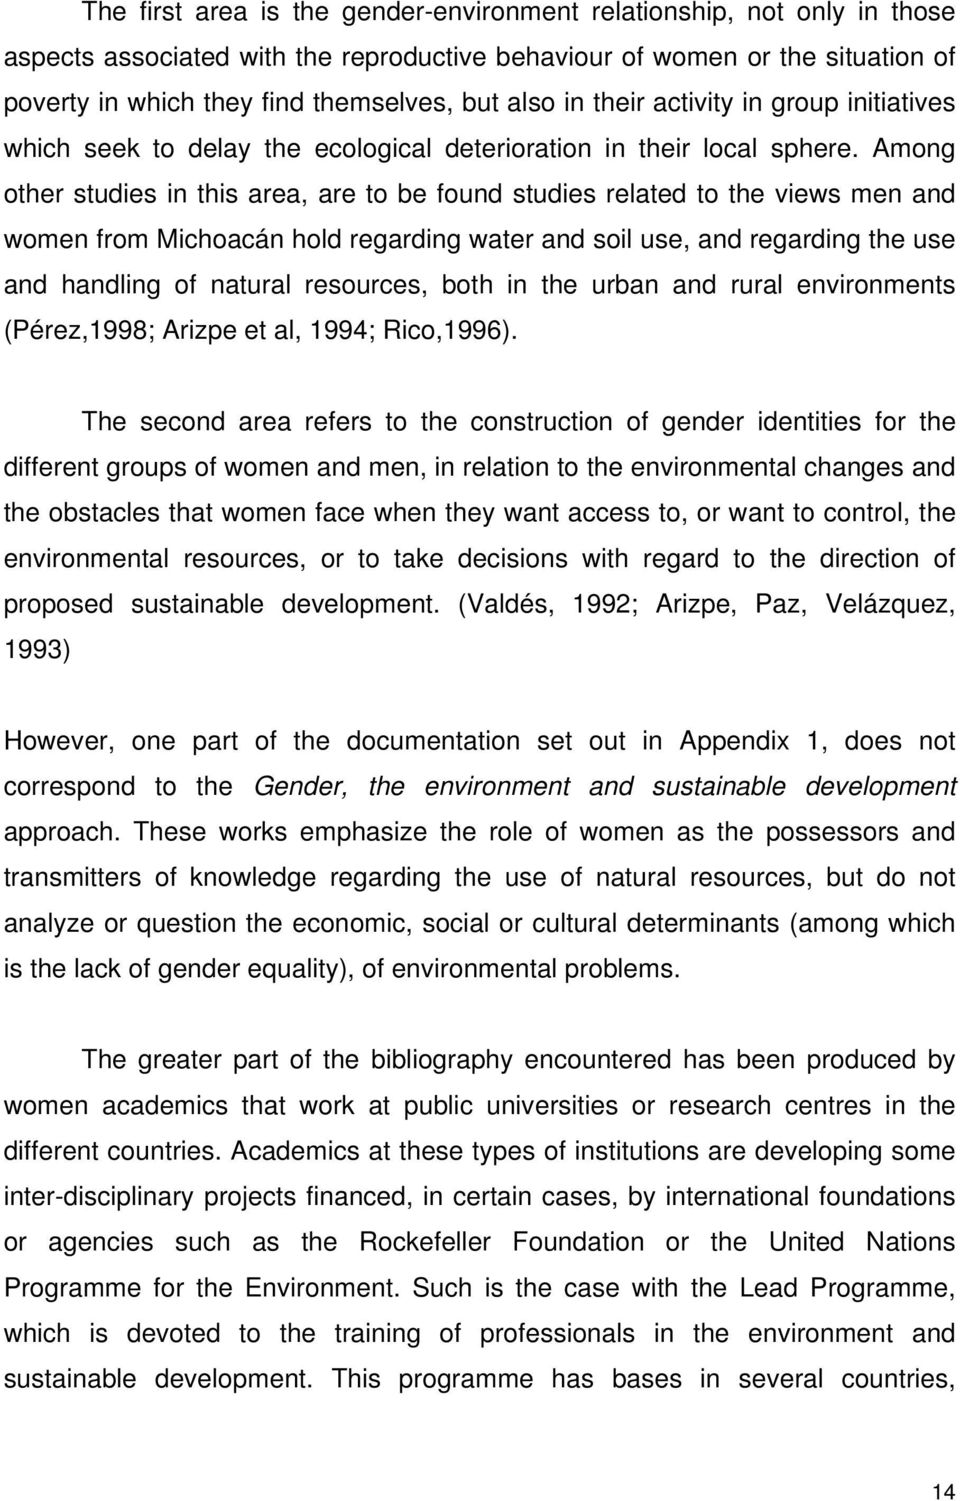 Among other studies in this area, are to be found studies related to the views men and women from Michoacán hold regarding water and soil use, and regarding the use and handling of natural resources,